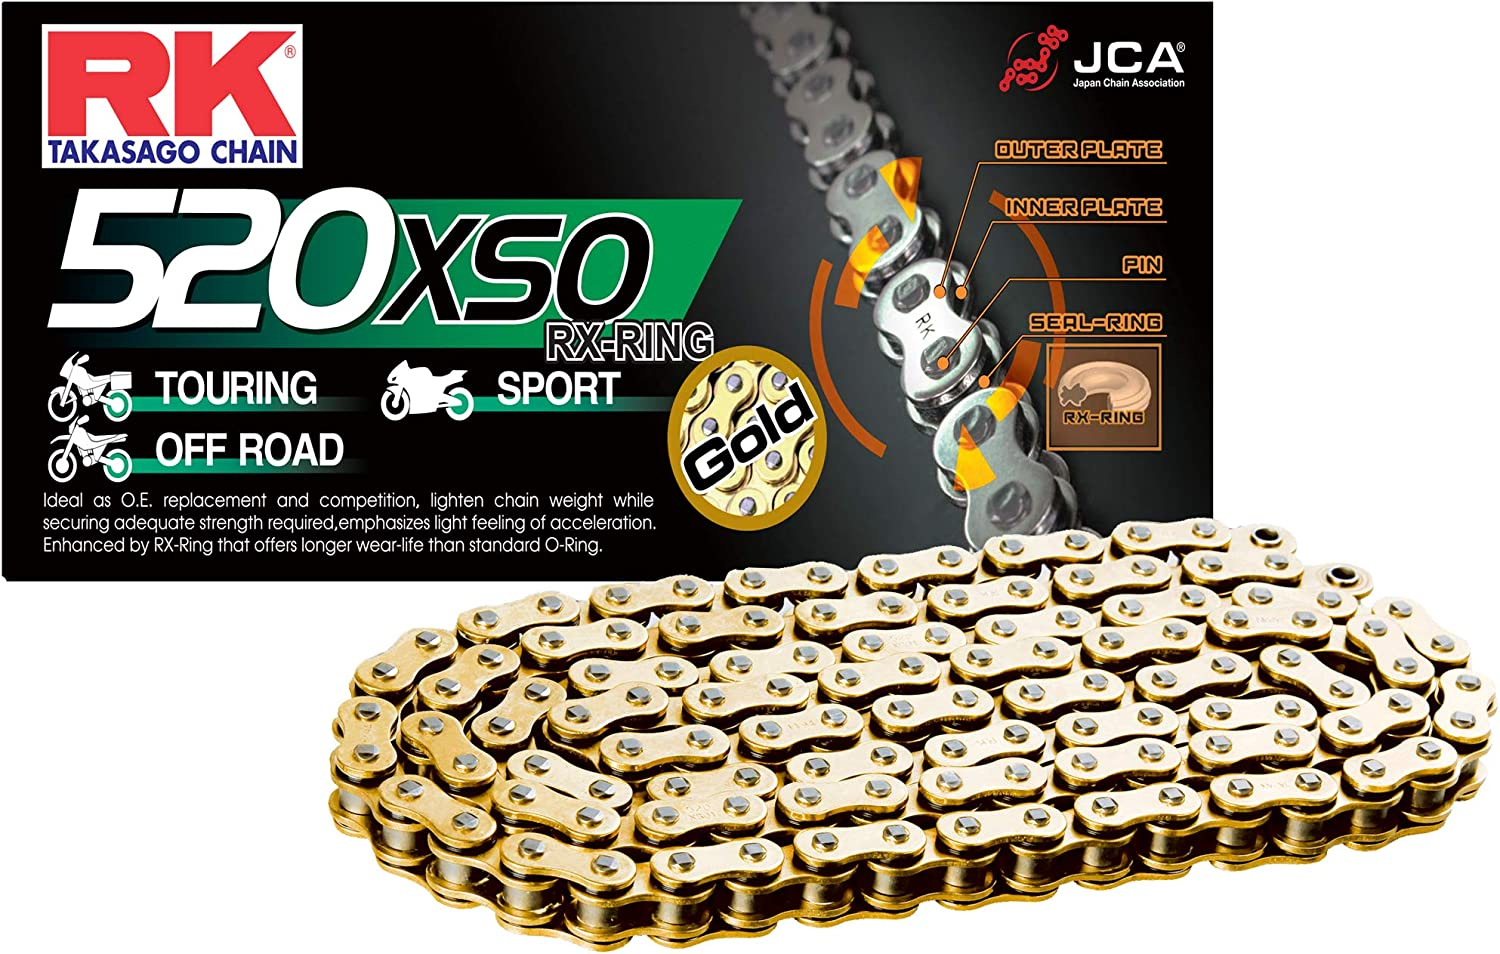 RK Racing Chain 520-SO-102 102-Links O-Ring Chain with Connecting Link